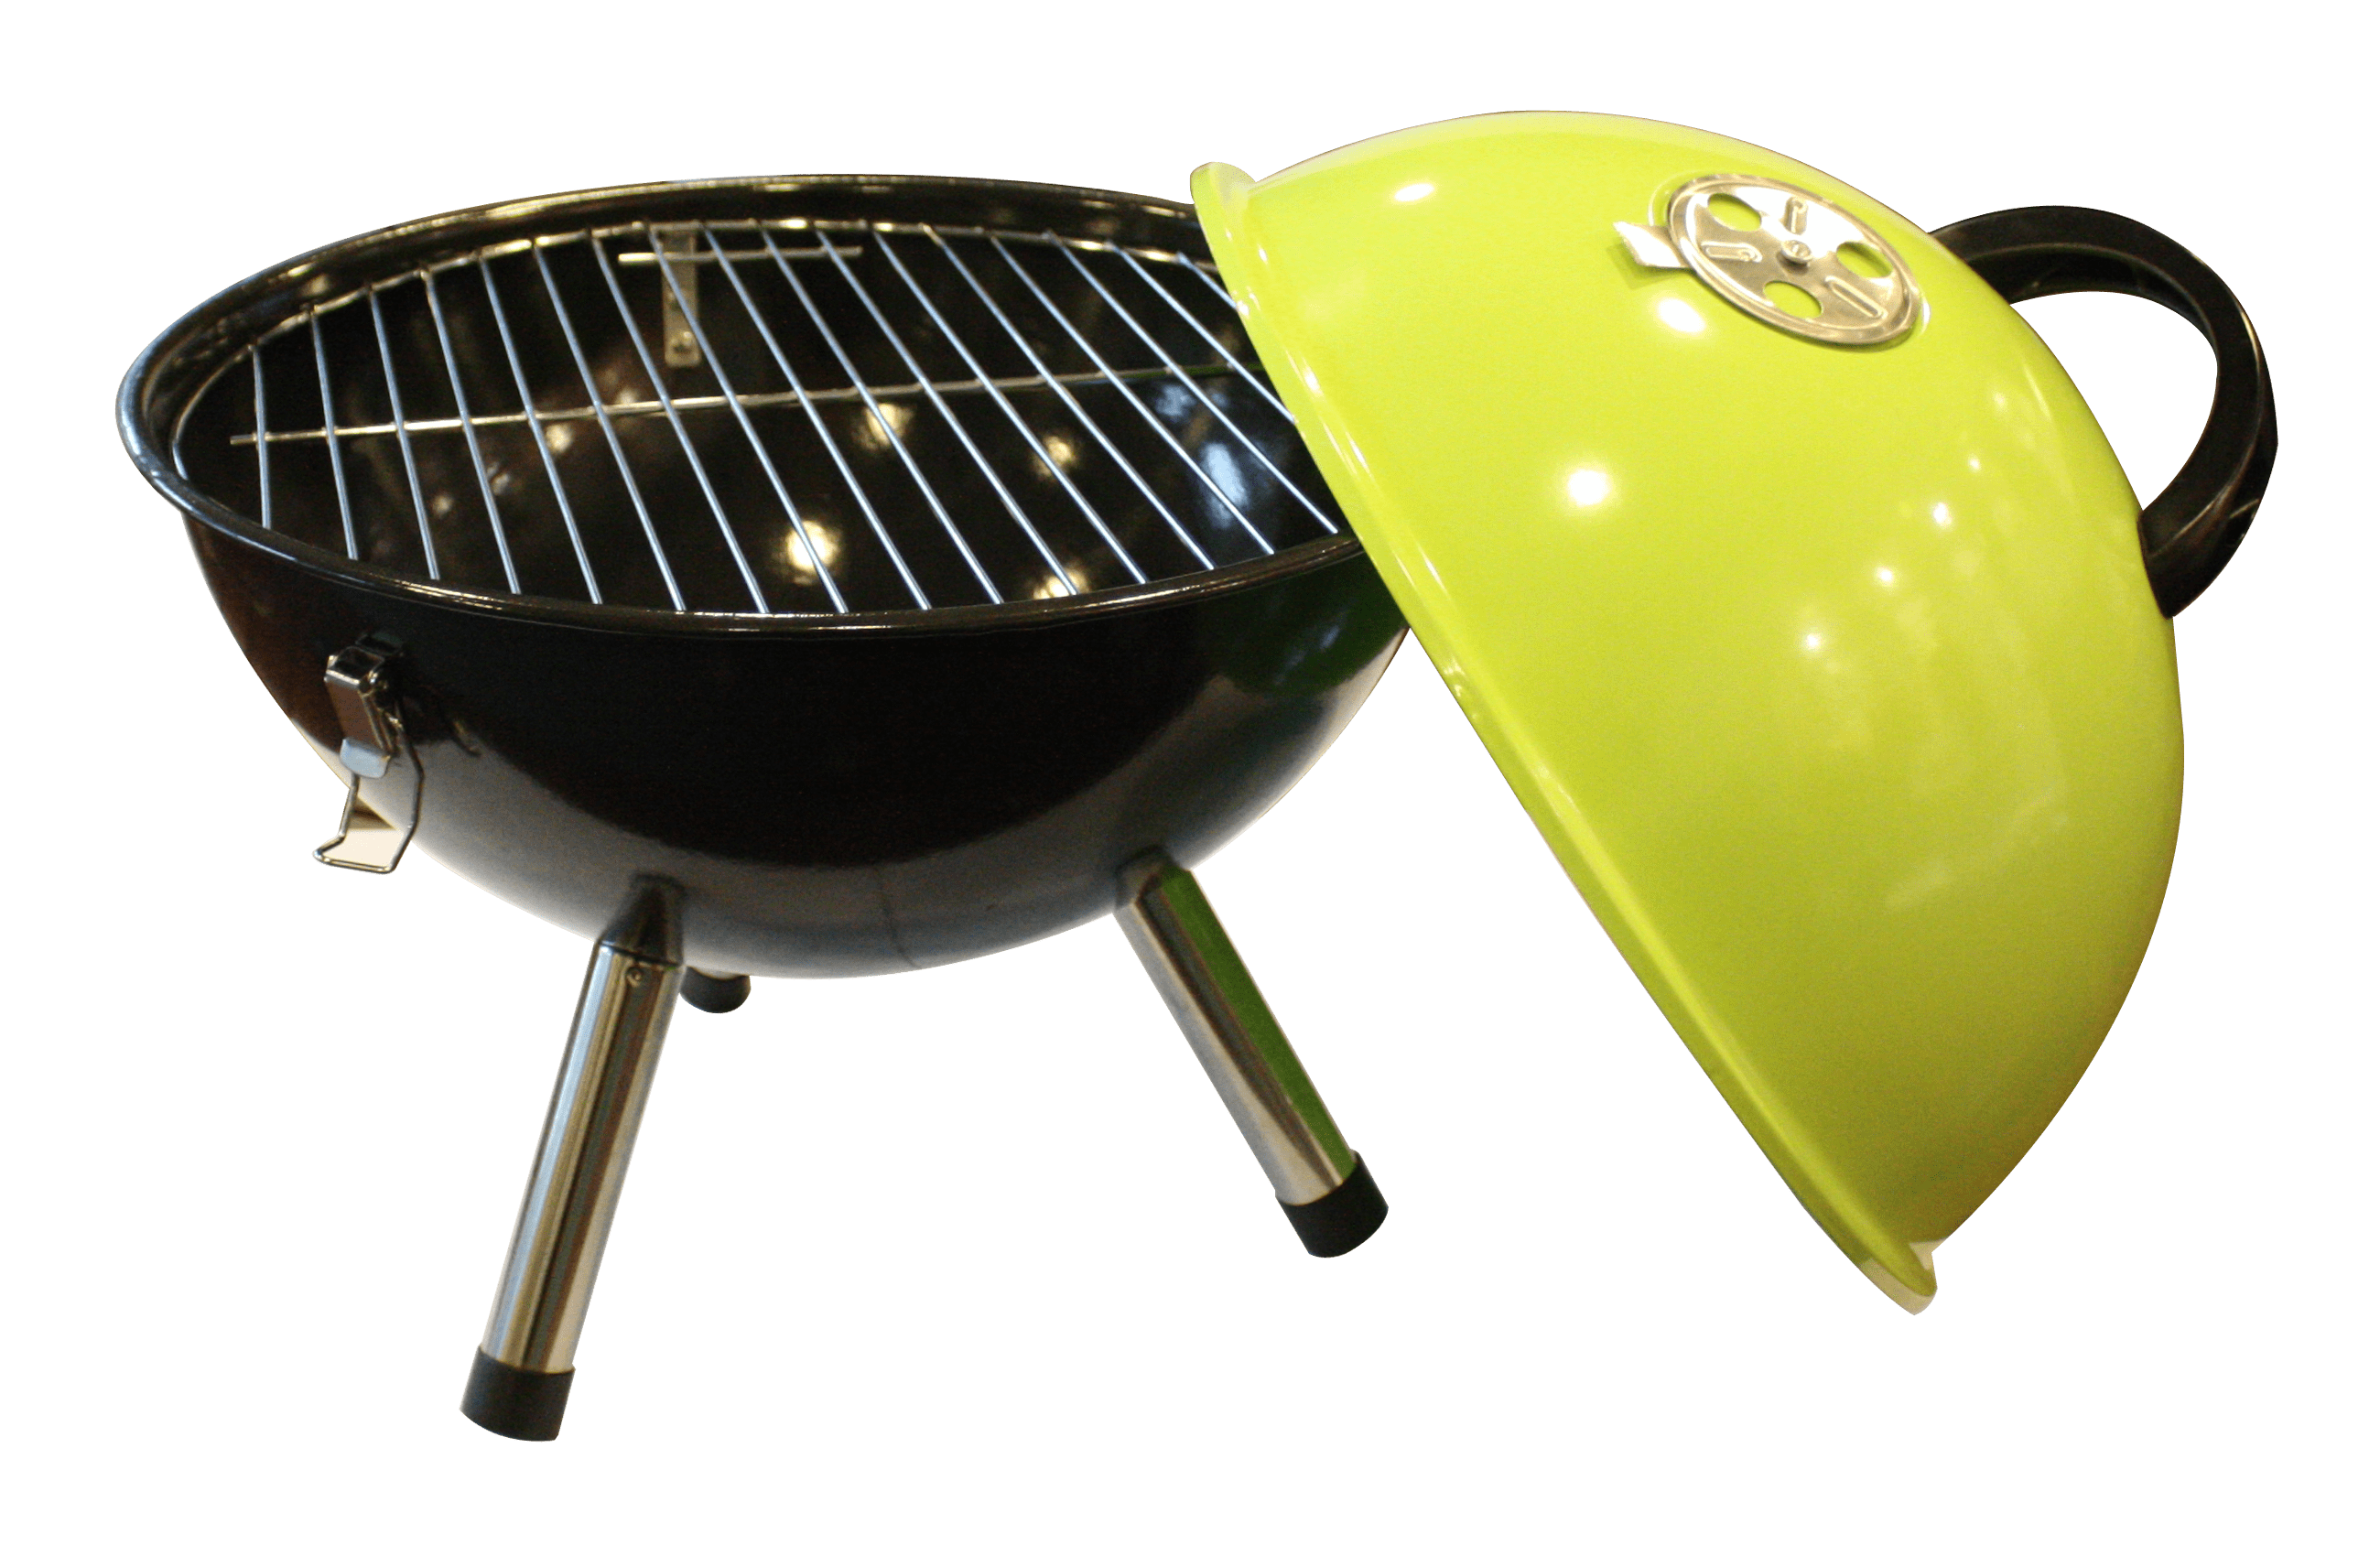 Small Portable Grill transparent PNG.